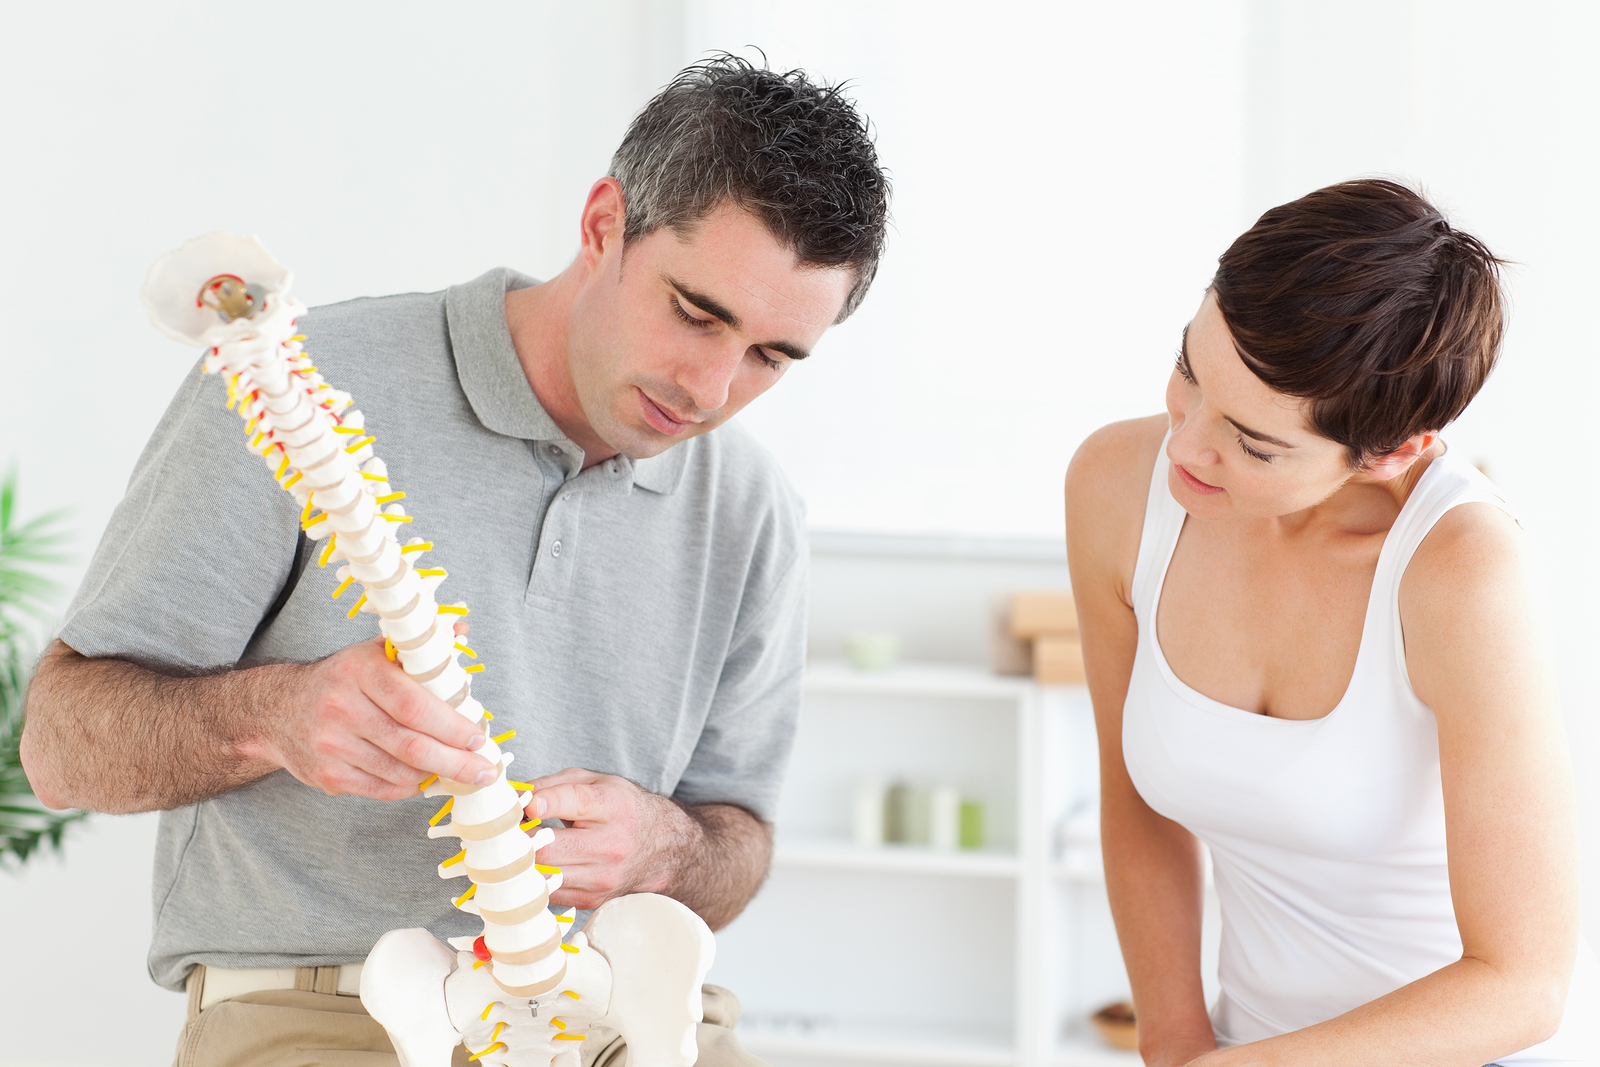 5 Phases of Chiropractic Care You Should Know About